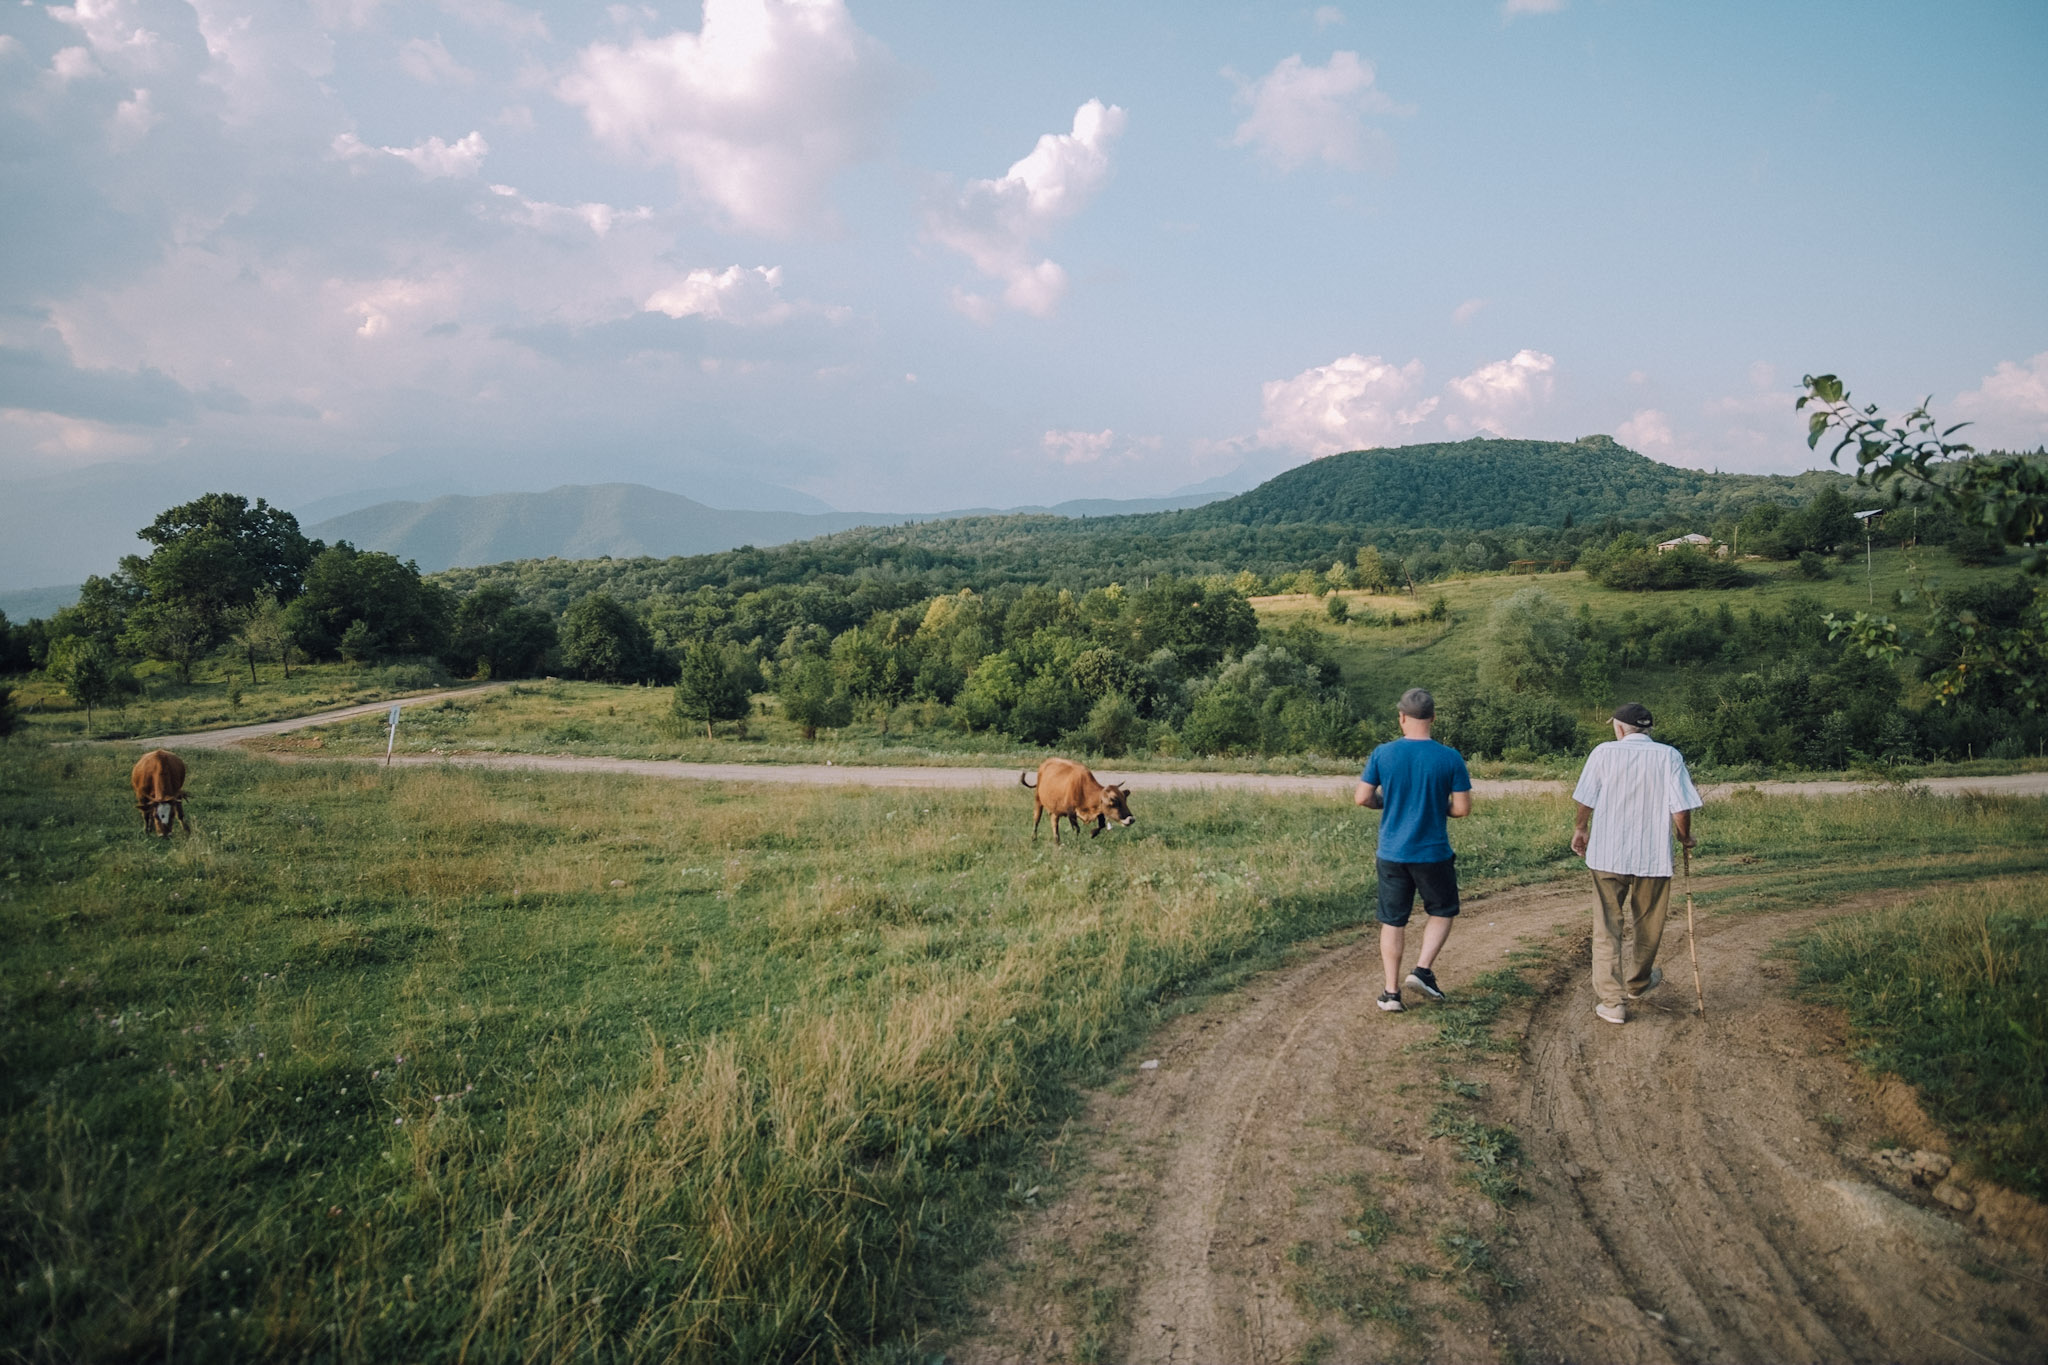 Dimitri Mais and his father, Paata, walk on a dirt road past grazing cows under a blue but cloudy sky